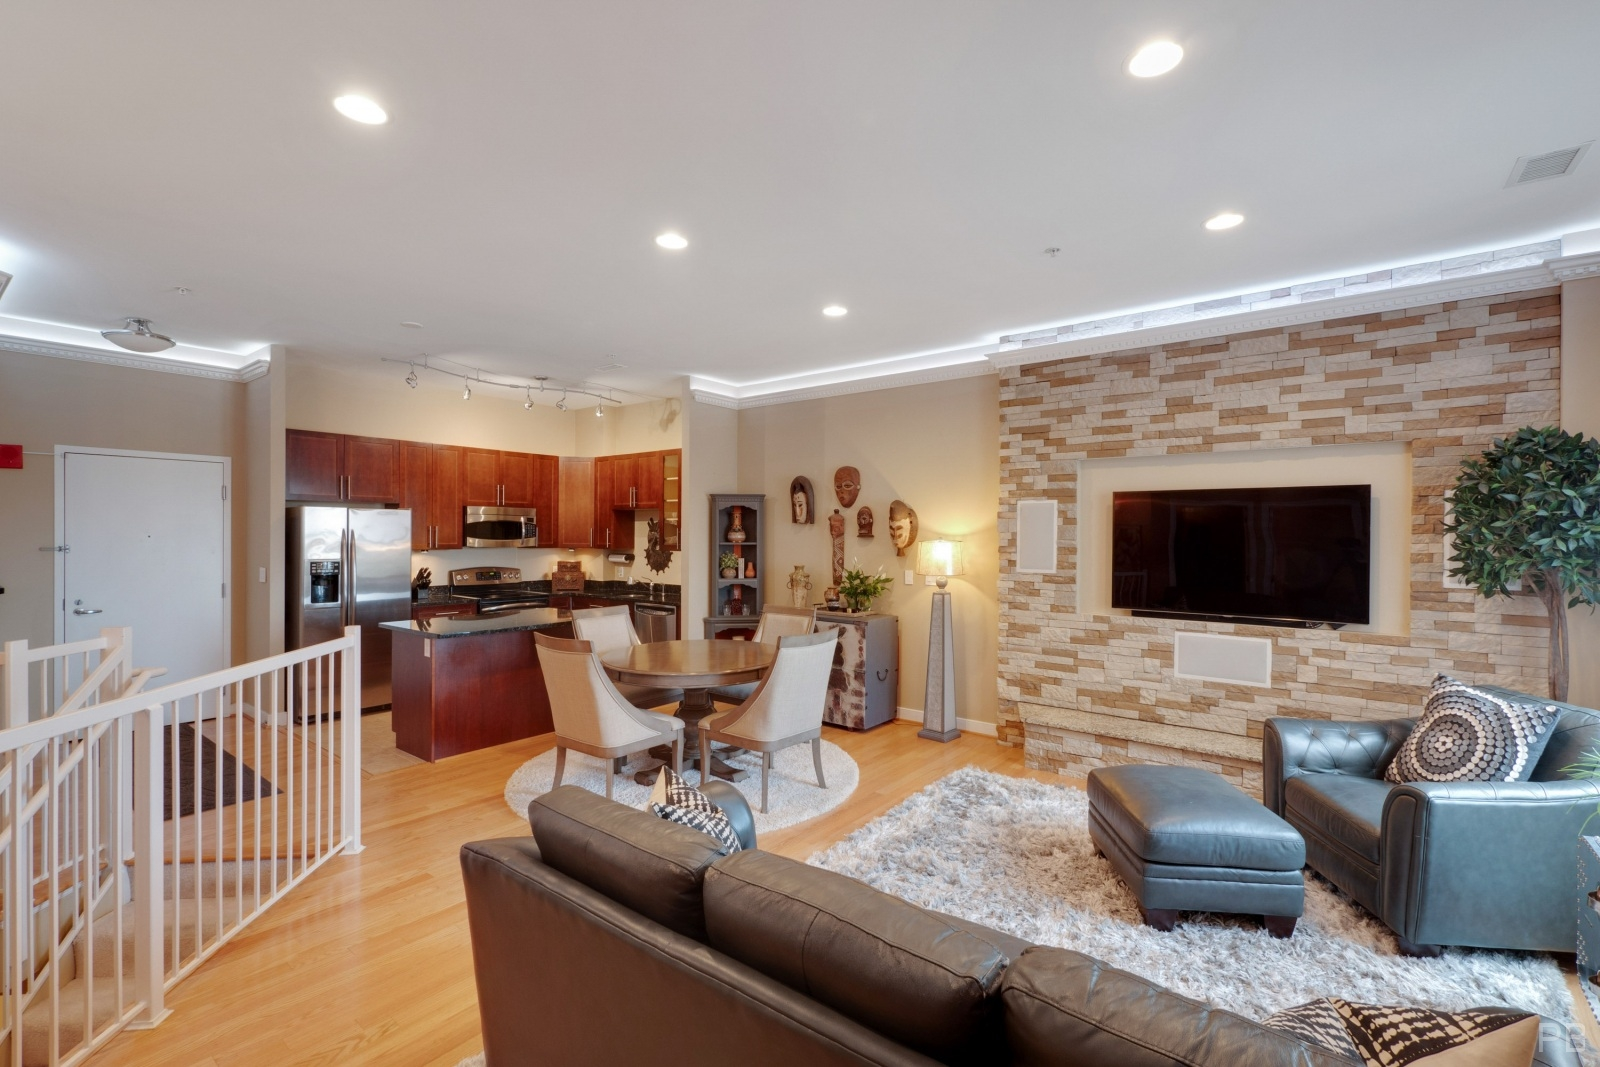 Decorative stone wall in the living room